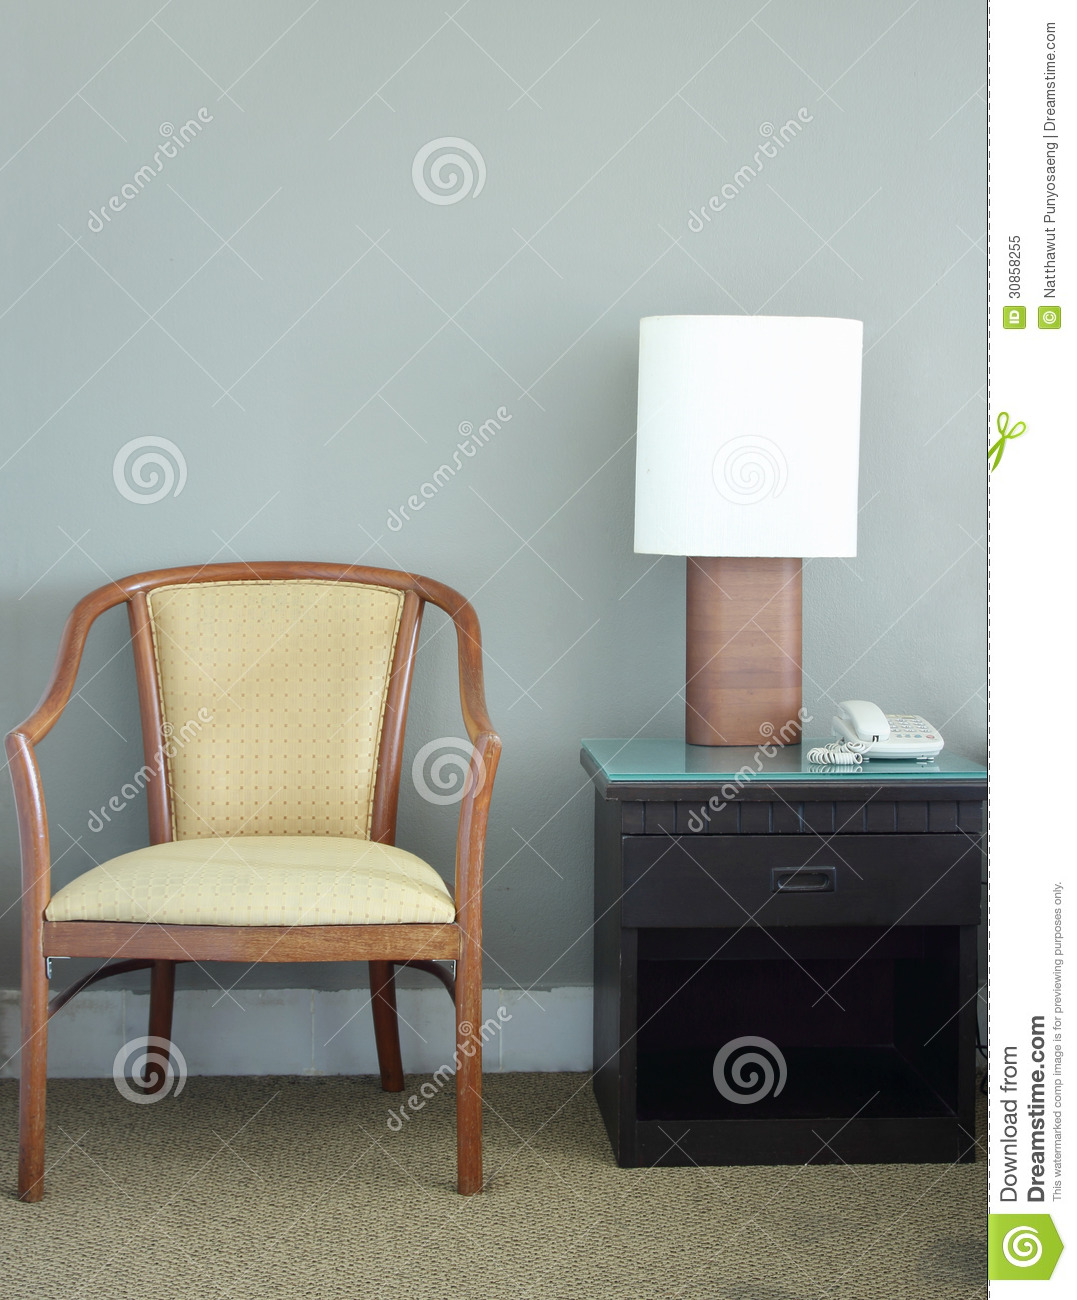 chair and table lamp in bedroom royalty free stock photo